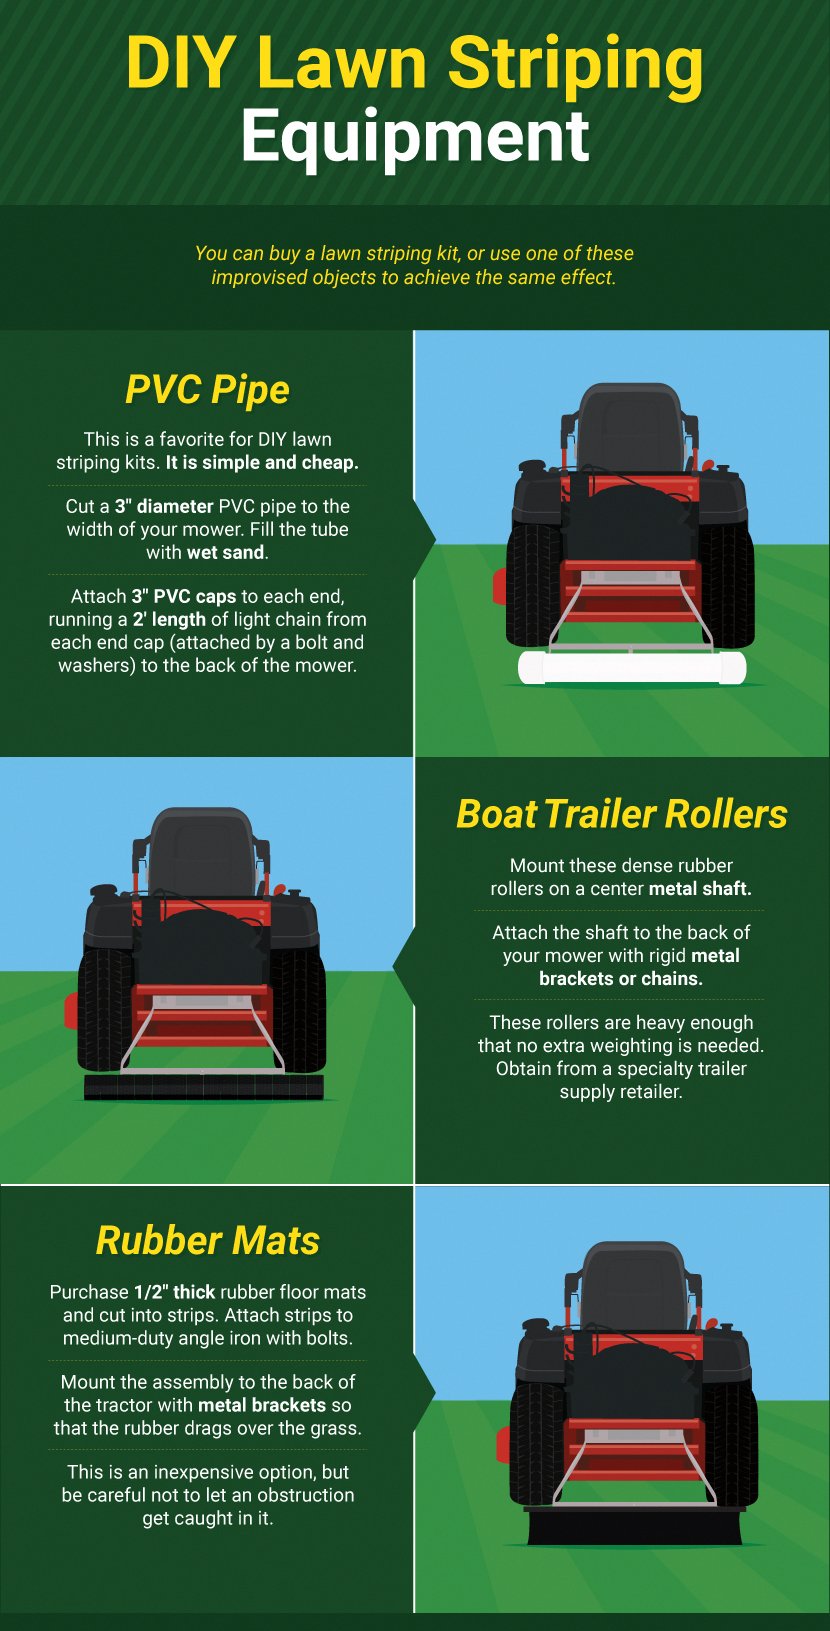 Diy Lawn Striping Equipment Striping Kits Attach To The Back Of Your Tractor And Either By Rolling Or Dragg Lawn Striping Lawn Care Tips Lawn Striping Kits